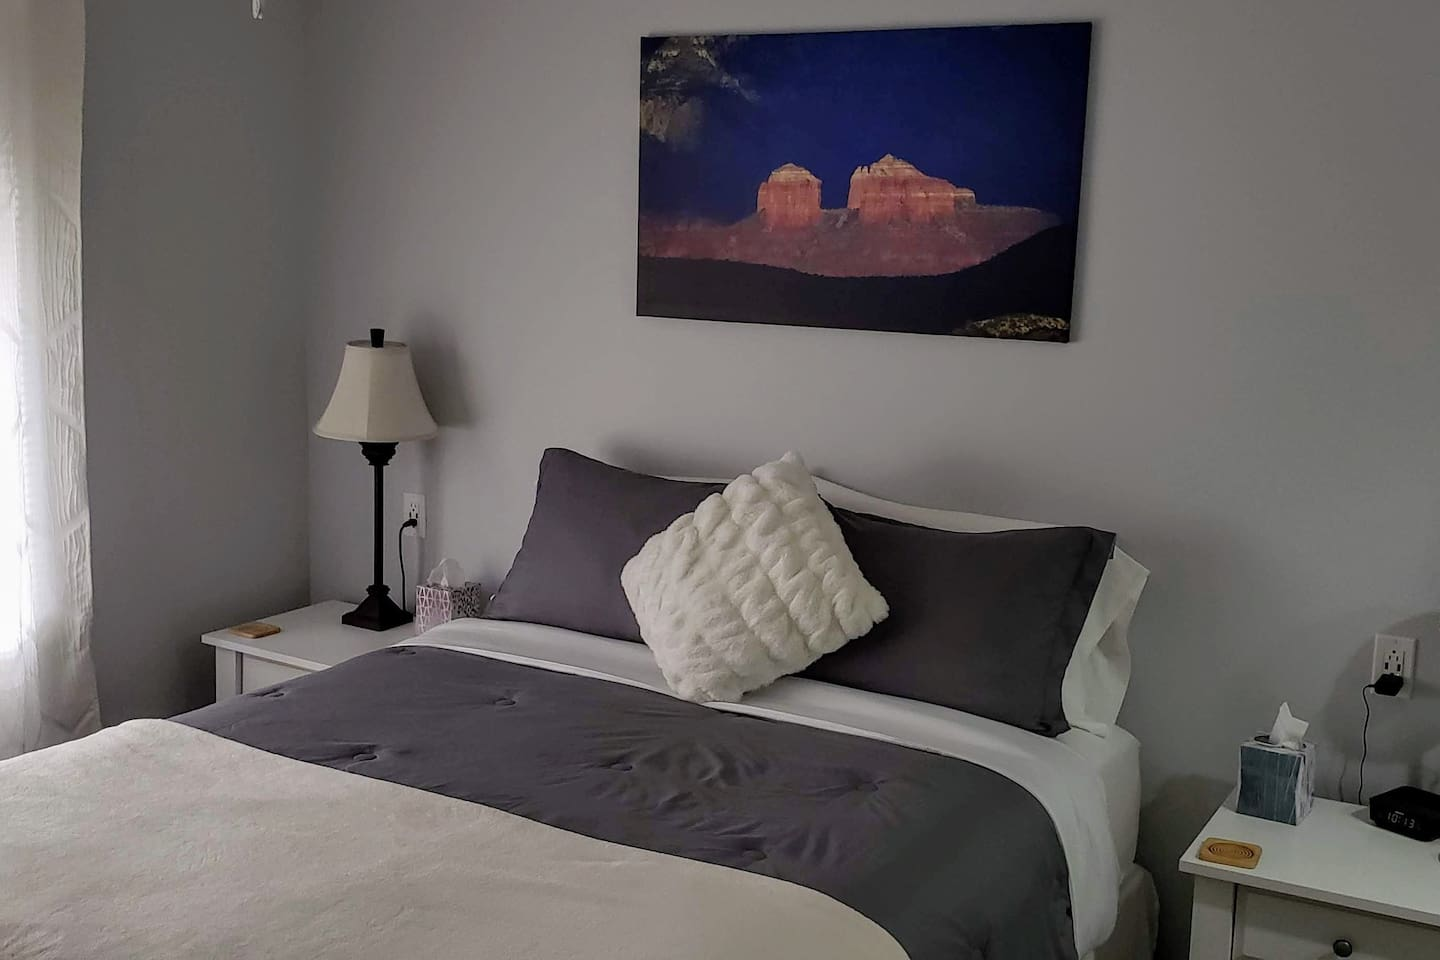 Peaceful rest ~ Guest bedroom has nightstands, chest of drawers, upholstered chair, and a desk and chair! TV with local channels + Netflix and Amazon Prime movies (no cable).  Your own private bathroom is off of the shared hallway. Enjoy!